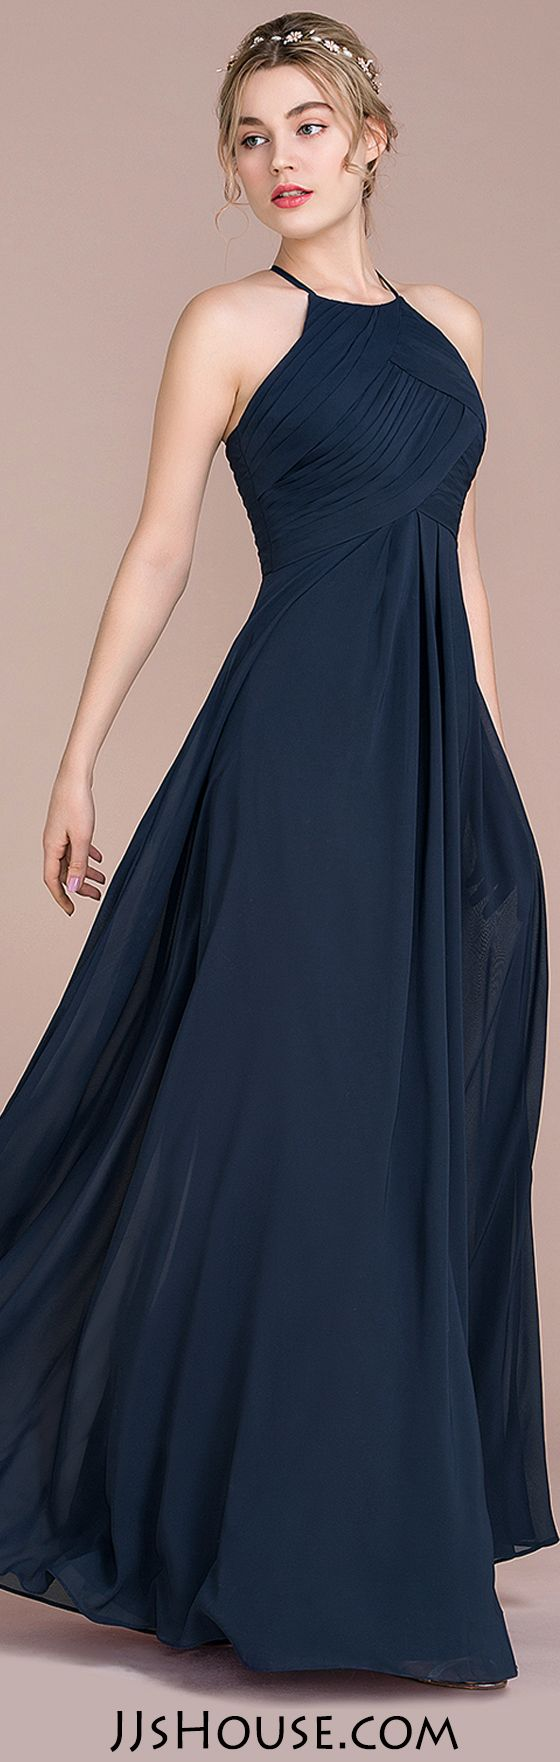 Bridesmaid Dresses - 48 colors available >>  #JJsHouse